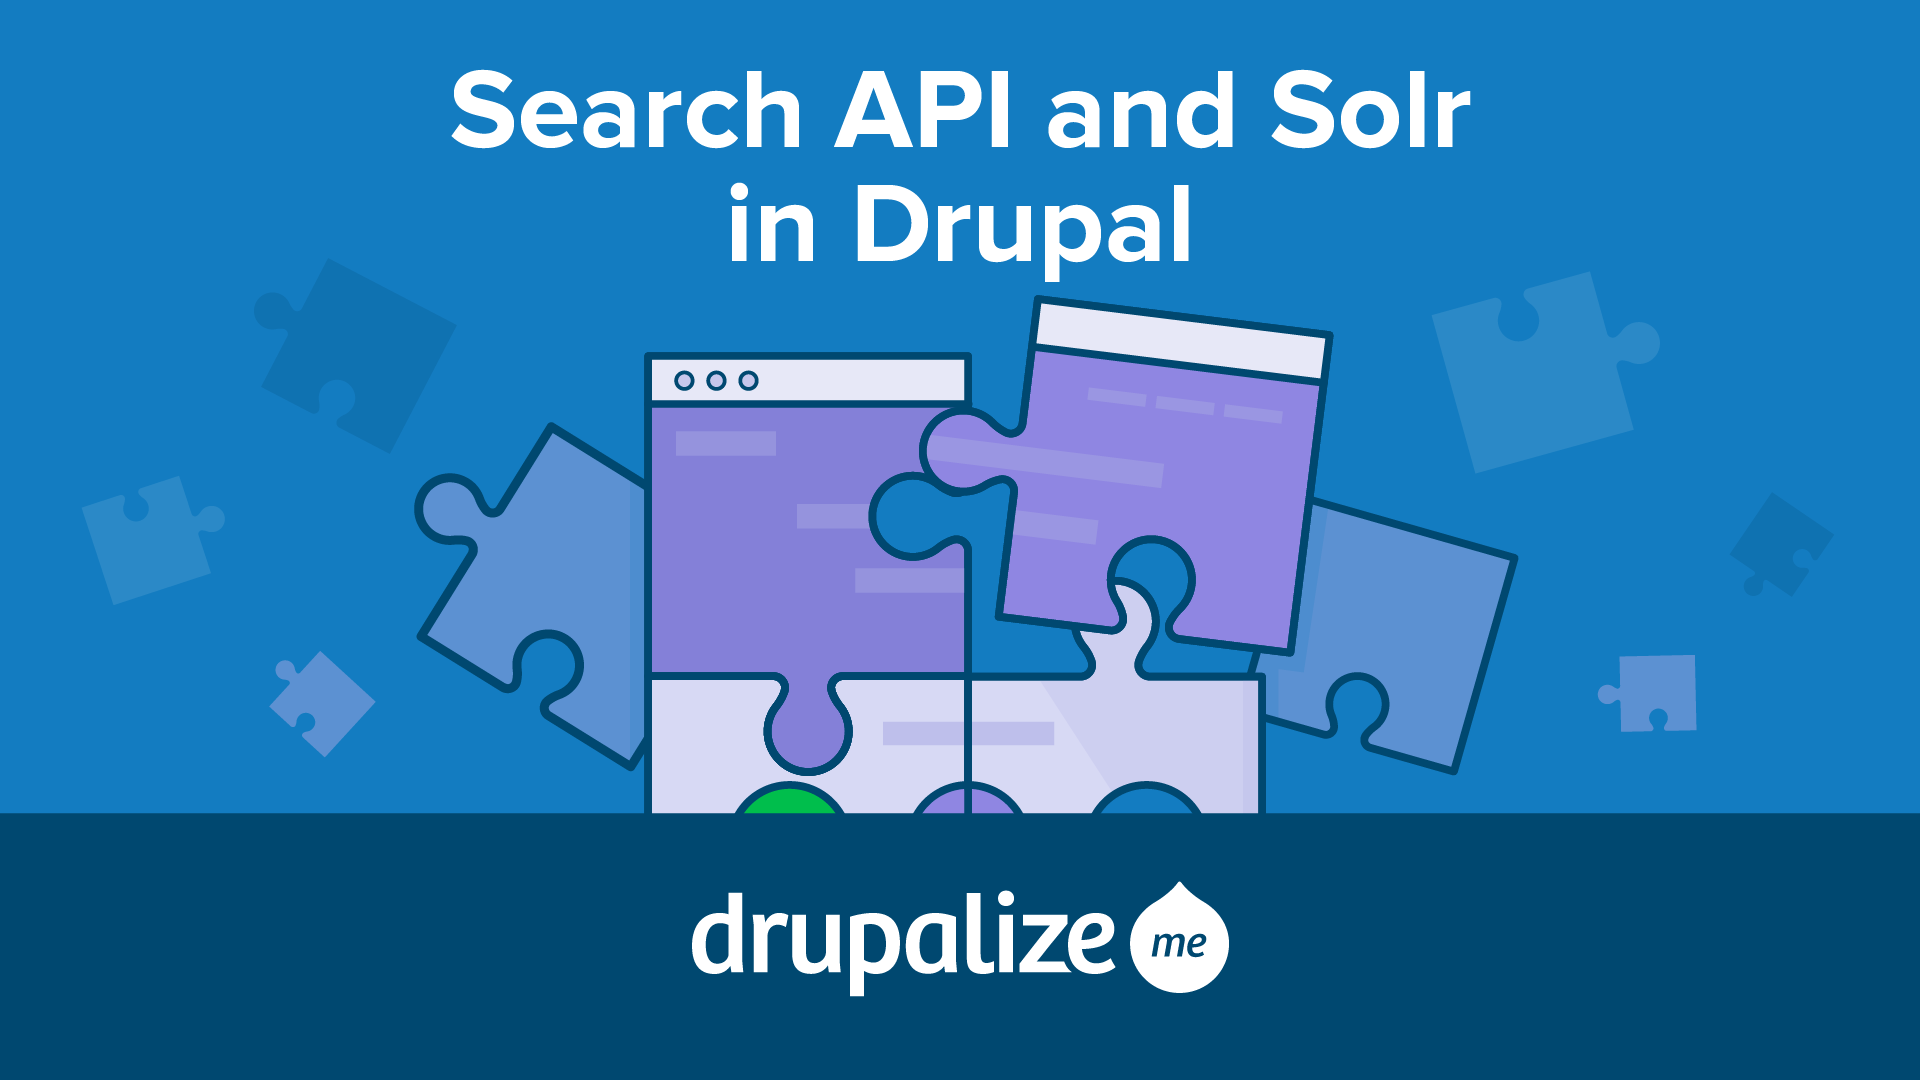 Search API and Solr in Drupal